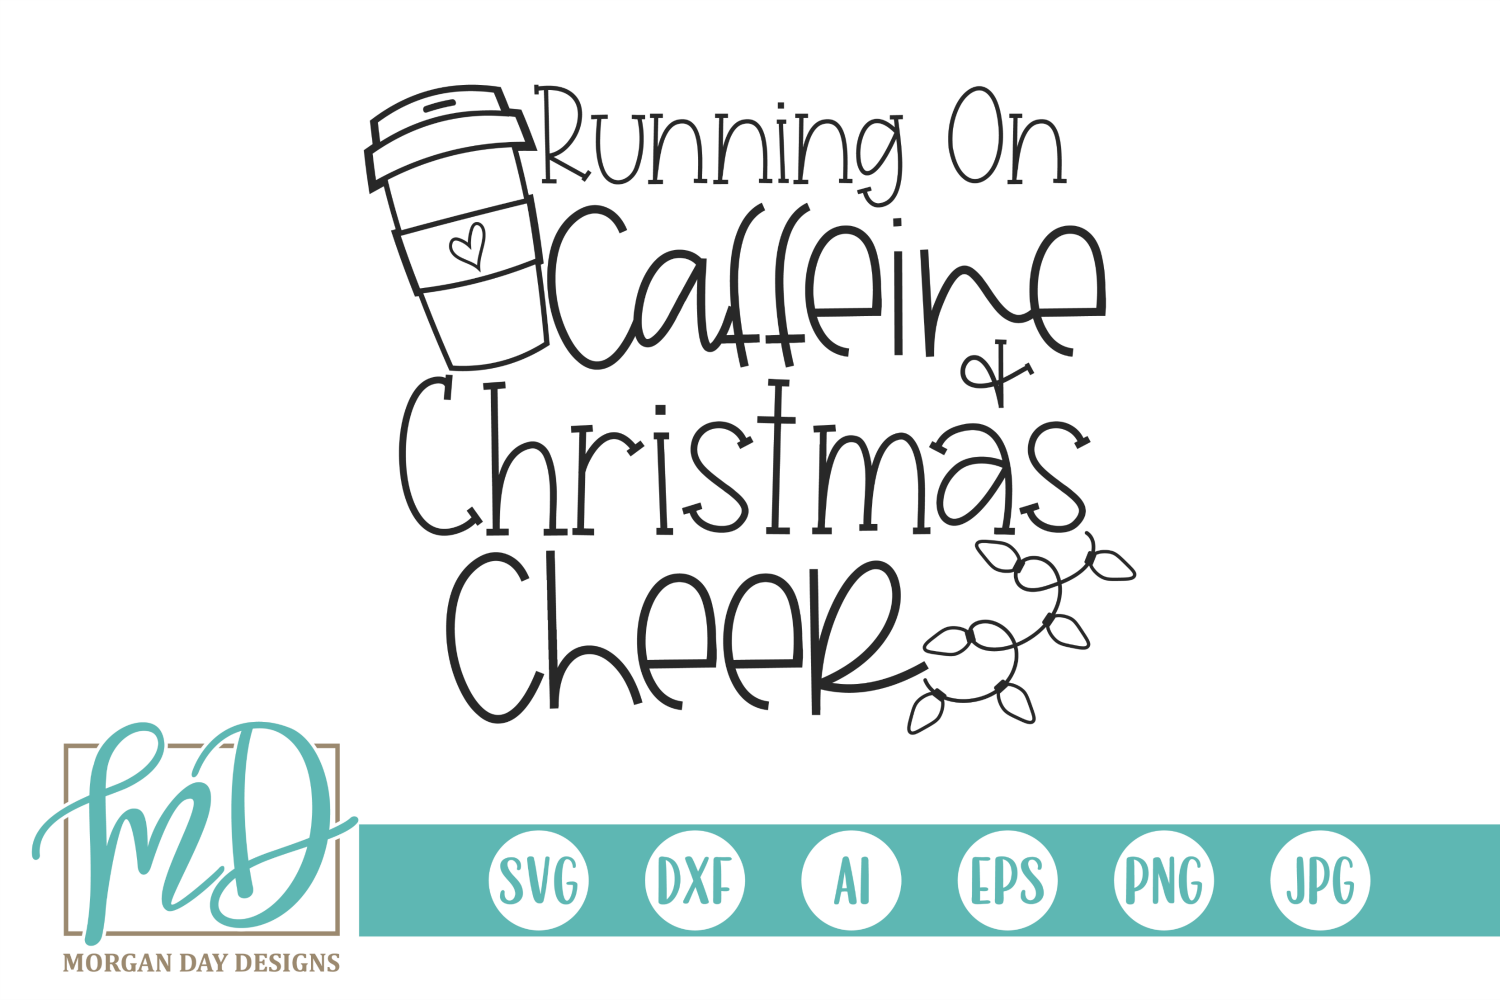 Download Free Running On Caffeine And Christmas Cheer Graphic By Morgan Day for Cricut Explore, Silhouette and other cutting machines.